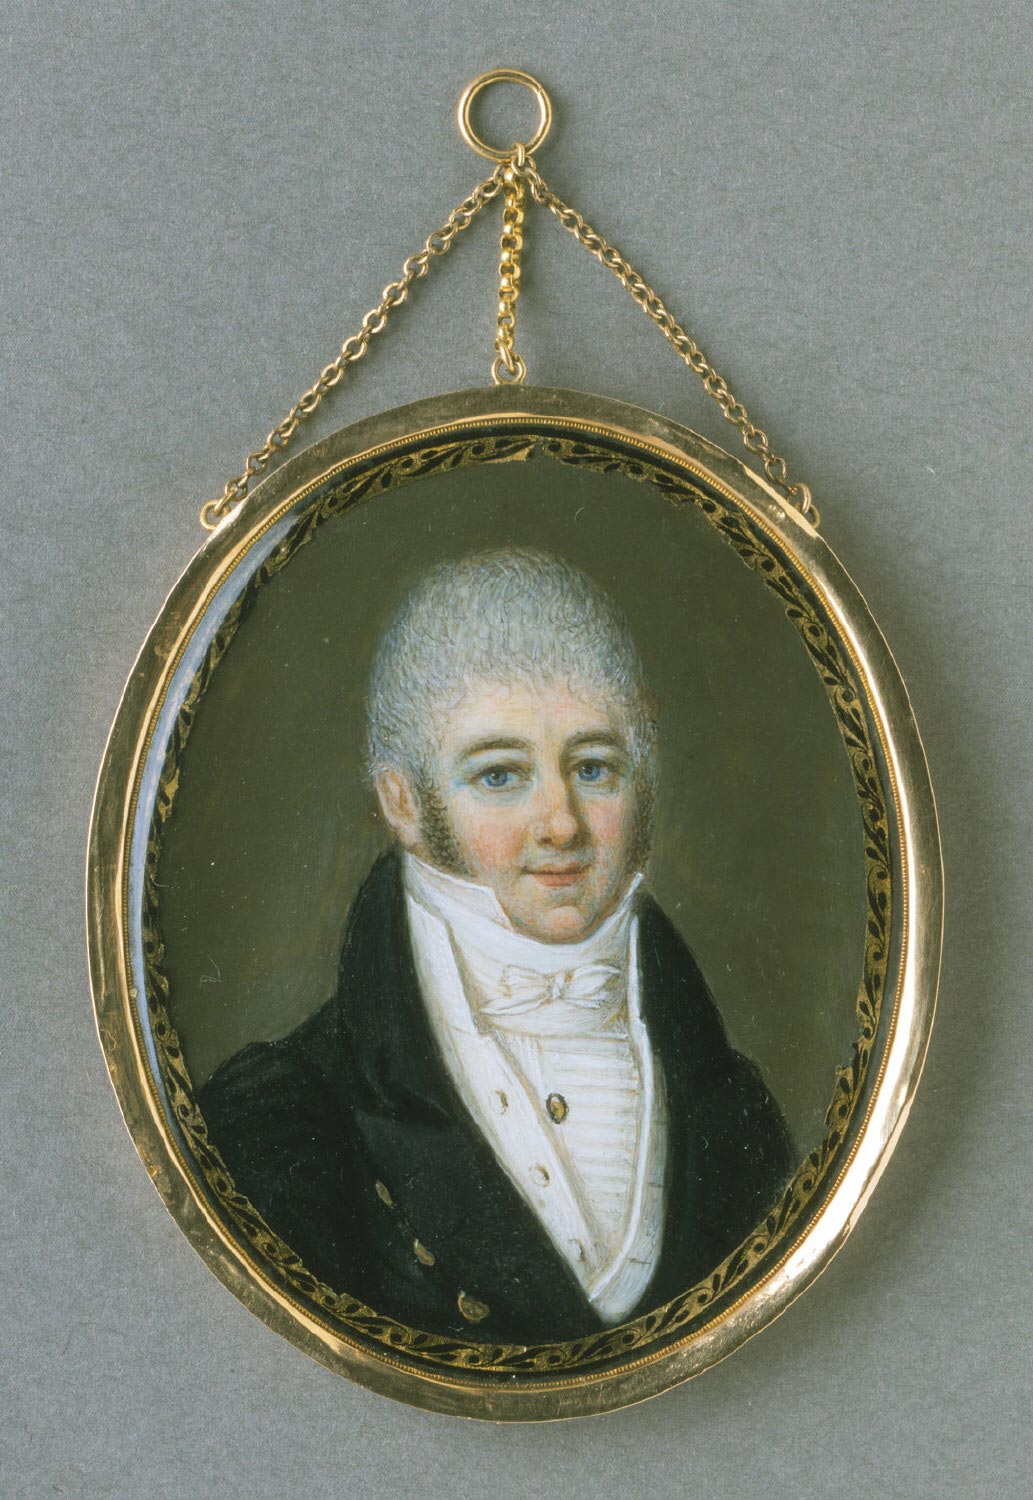 Identified as Gouverneur Morris